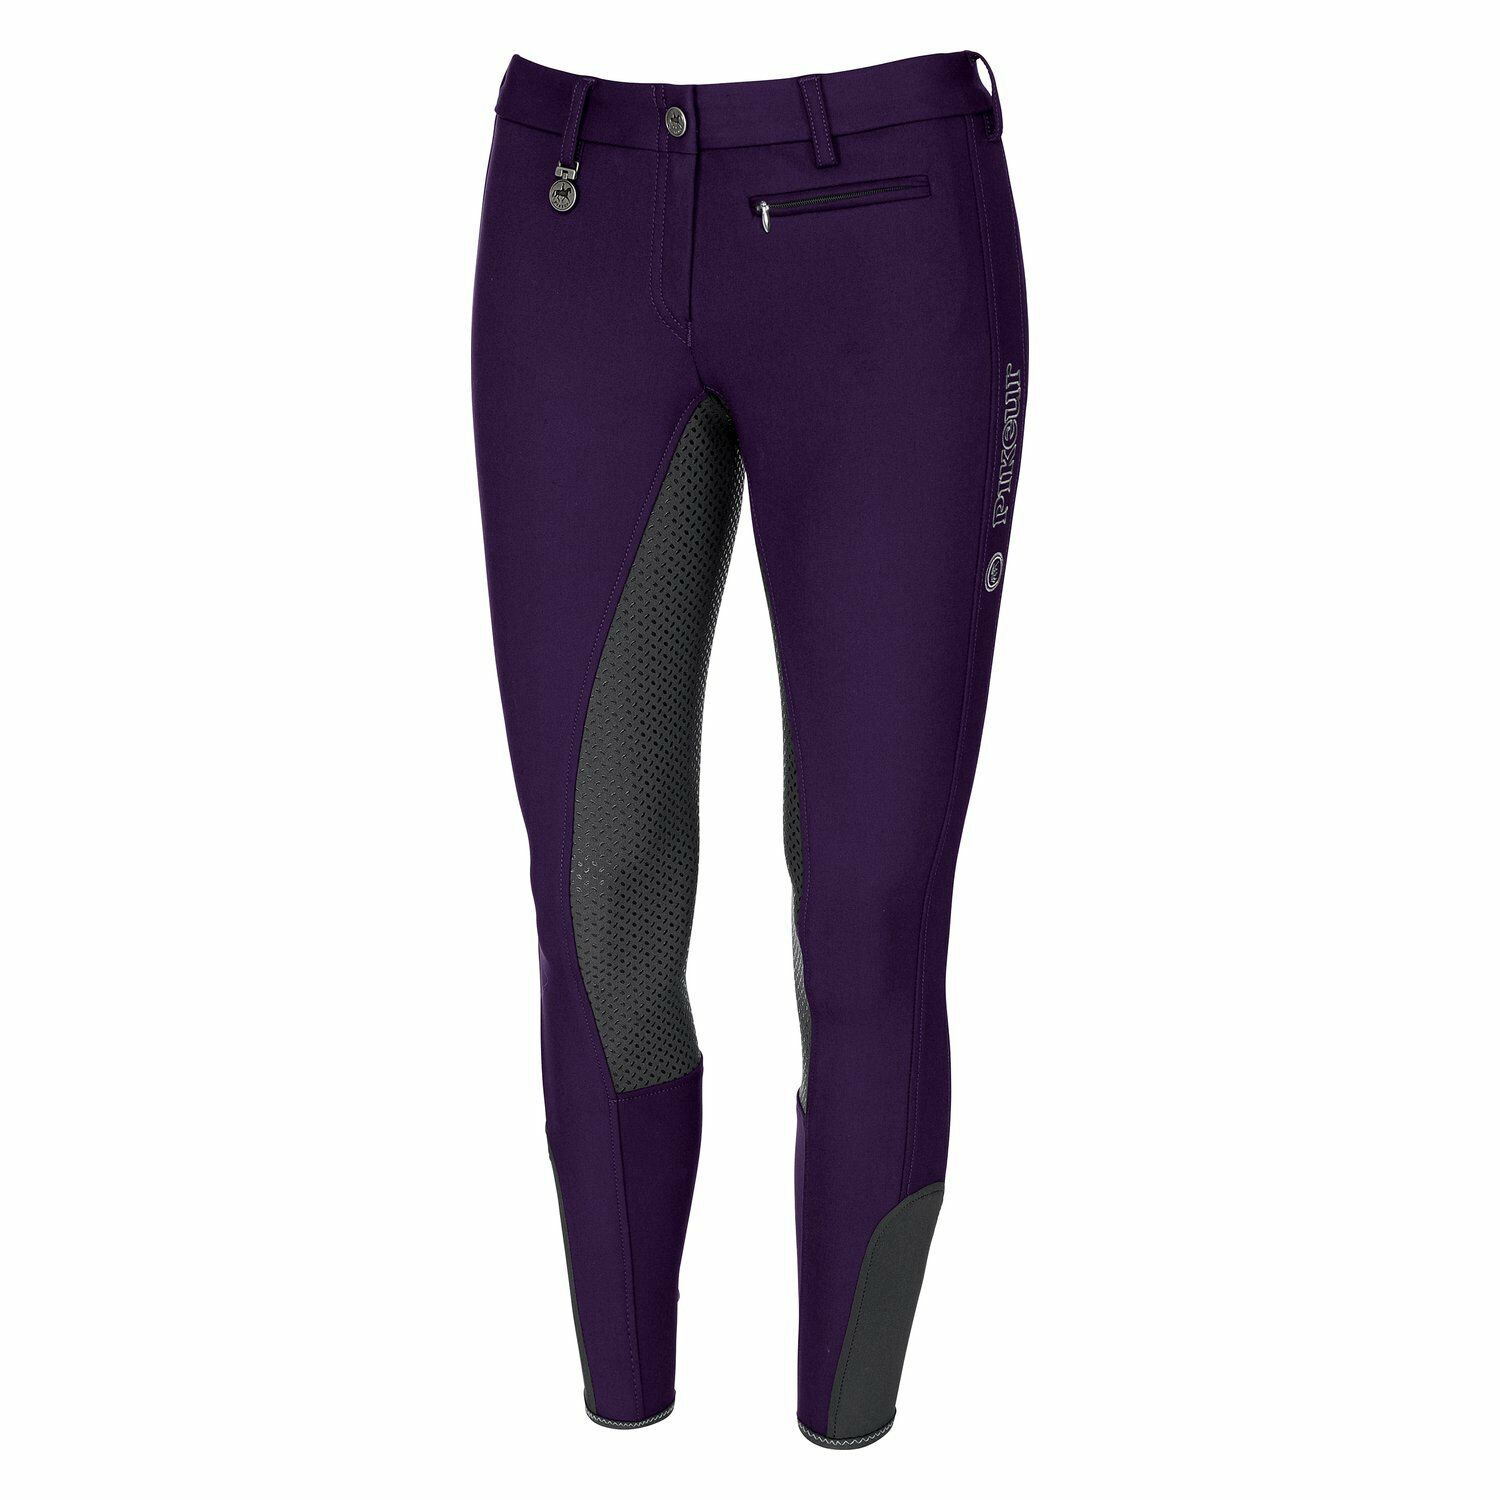 Pikeur Lucinda Grip Full Seat Breeches in Grape  Shadow  factory direct